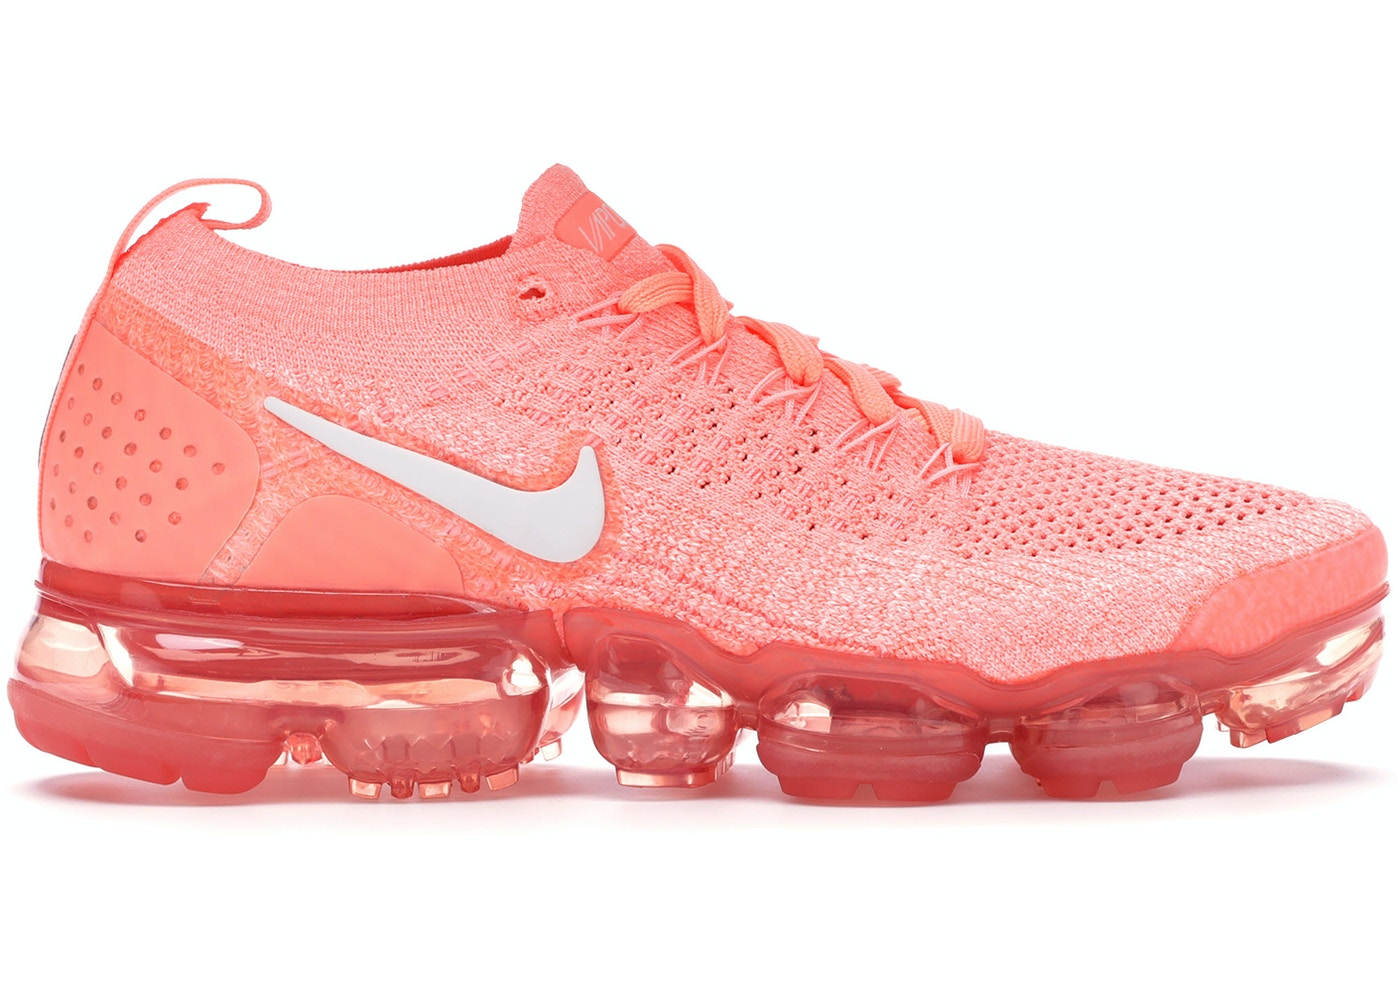 1126dd4a28d74 Air VaporMax 2 Crimson Pulse (W) - 942843-800